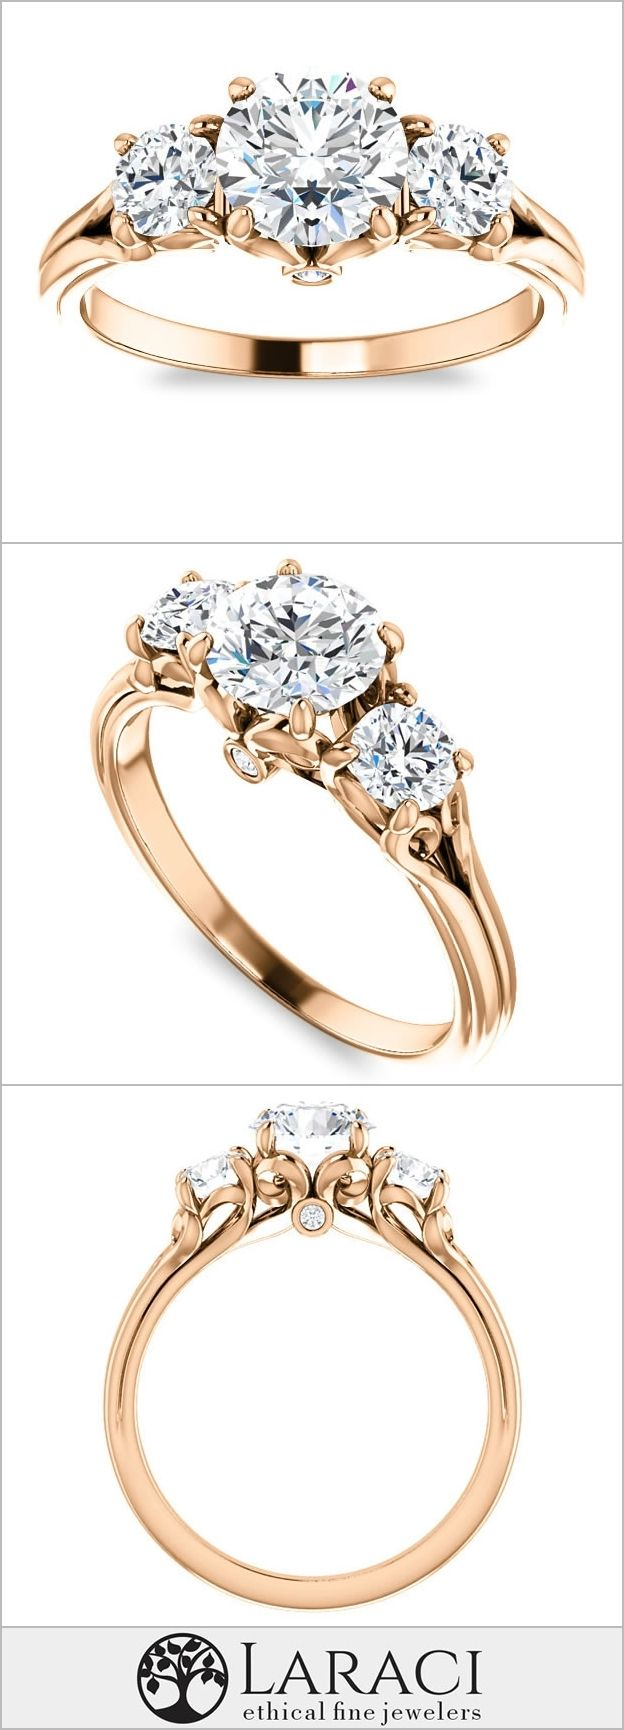 14K Rose Gold Accented Three Stone Engagement Ring set with a 1ct (6.5mm) Round Forever One Near Colorless Moissanite